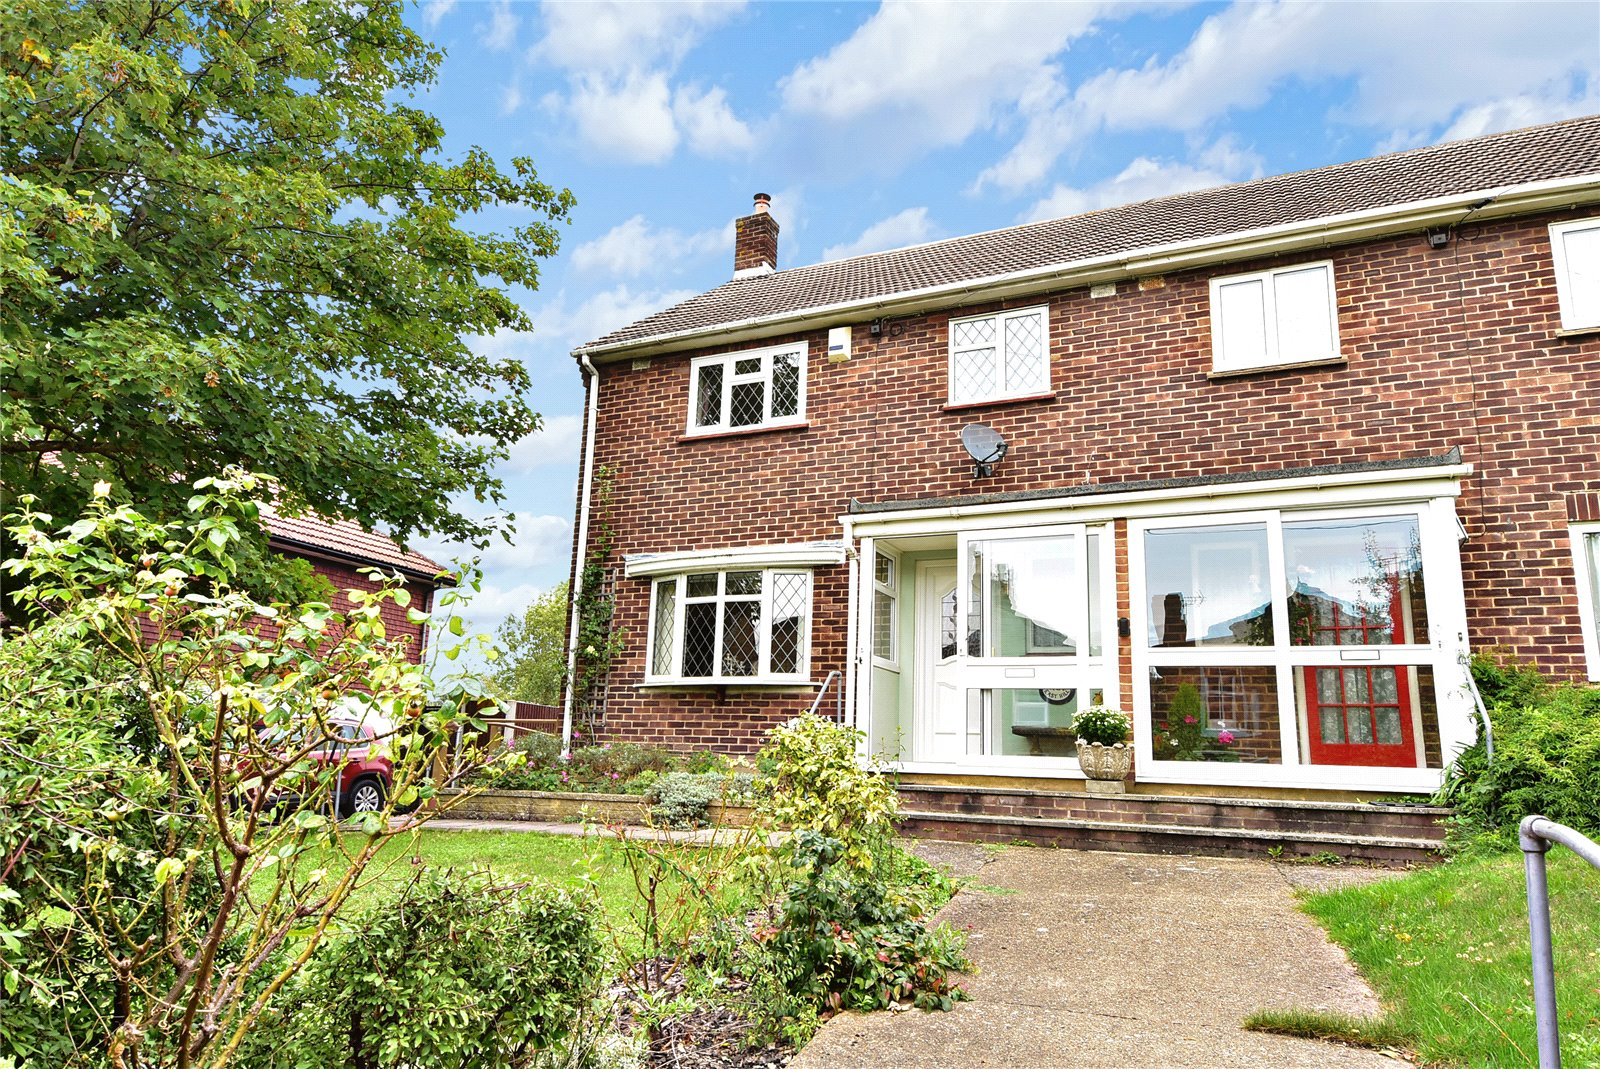 East Hill, South Darenth, Dartford, Kent, DA4